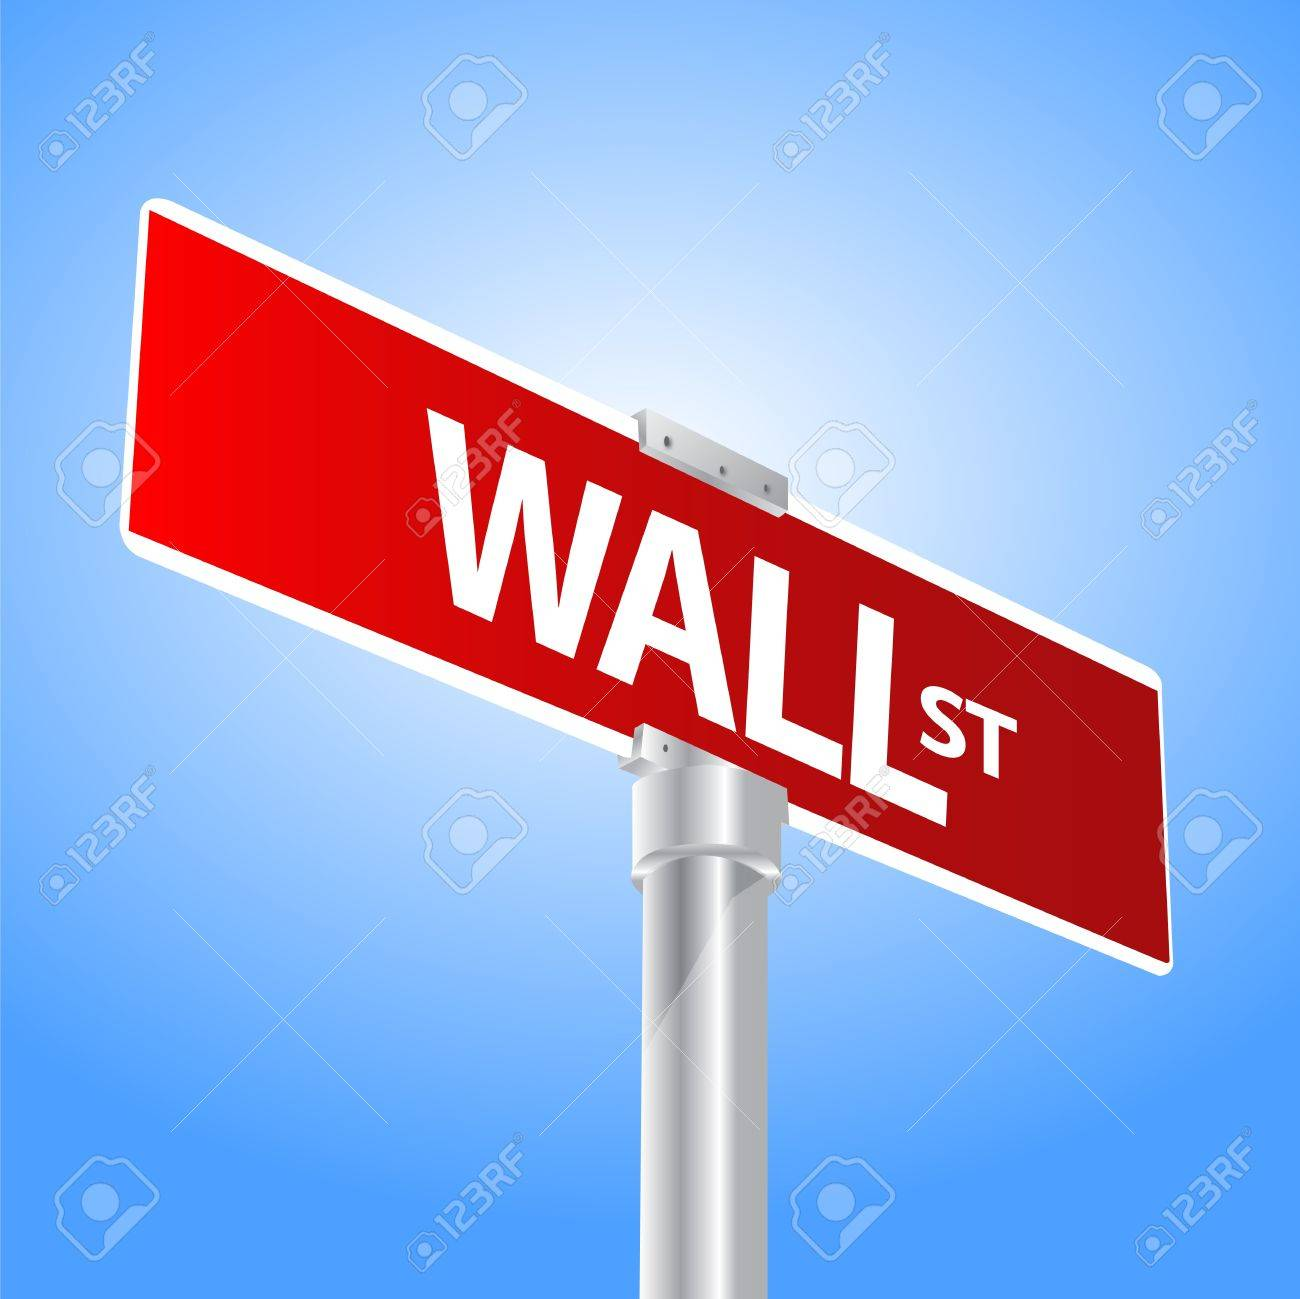 Wall Street sign Stock Vector - 13470527